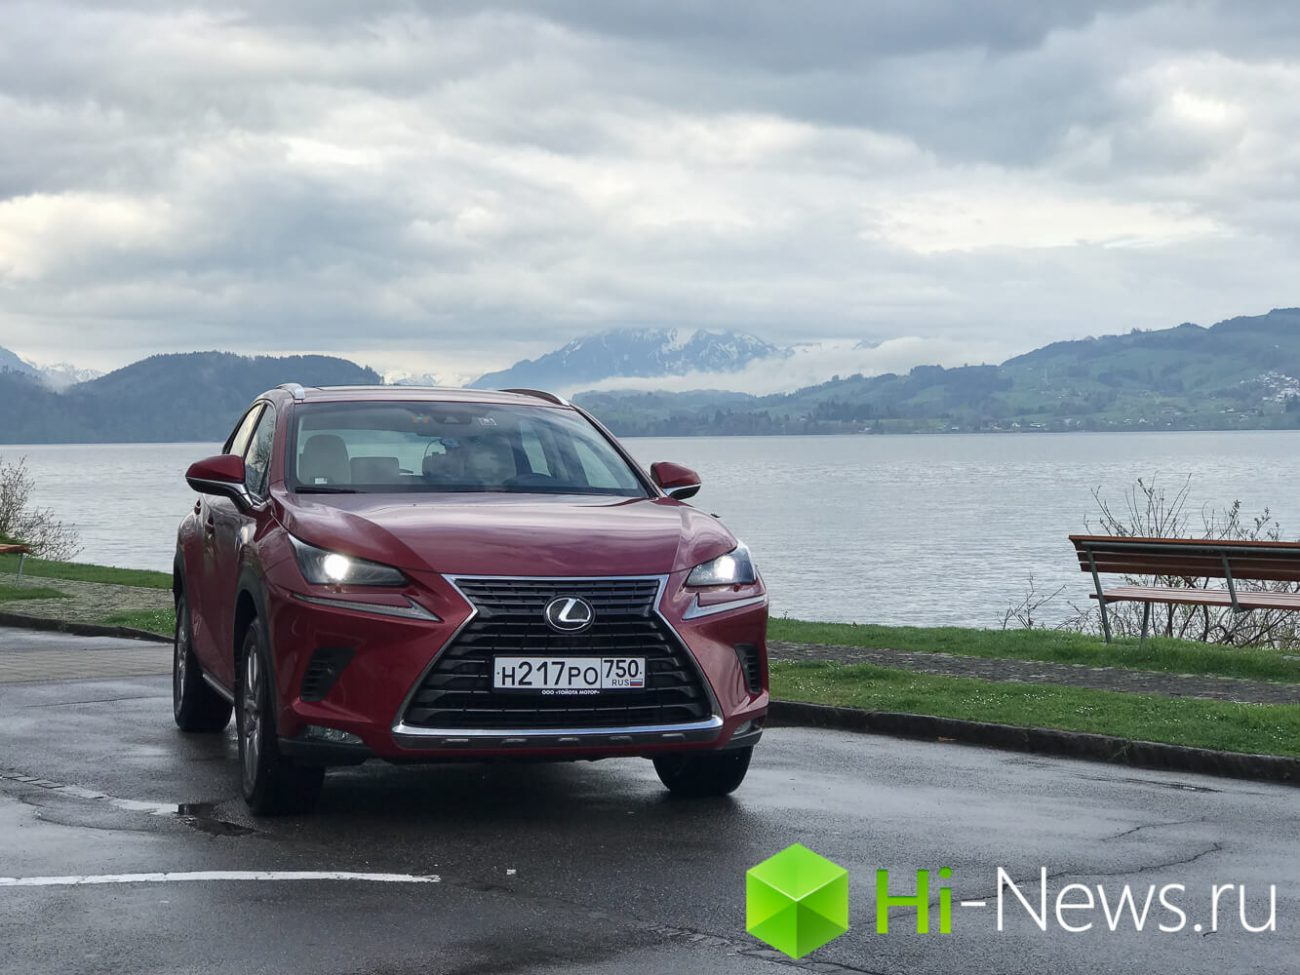 From Zurich to Milan: test drive the updated Lexus NX